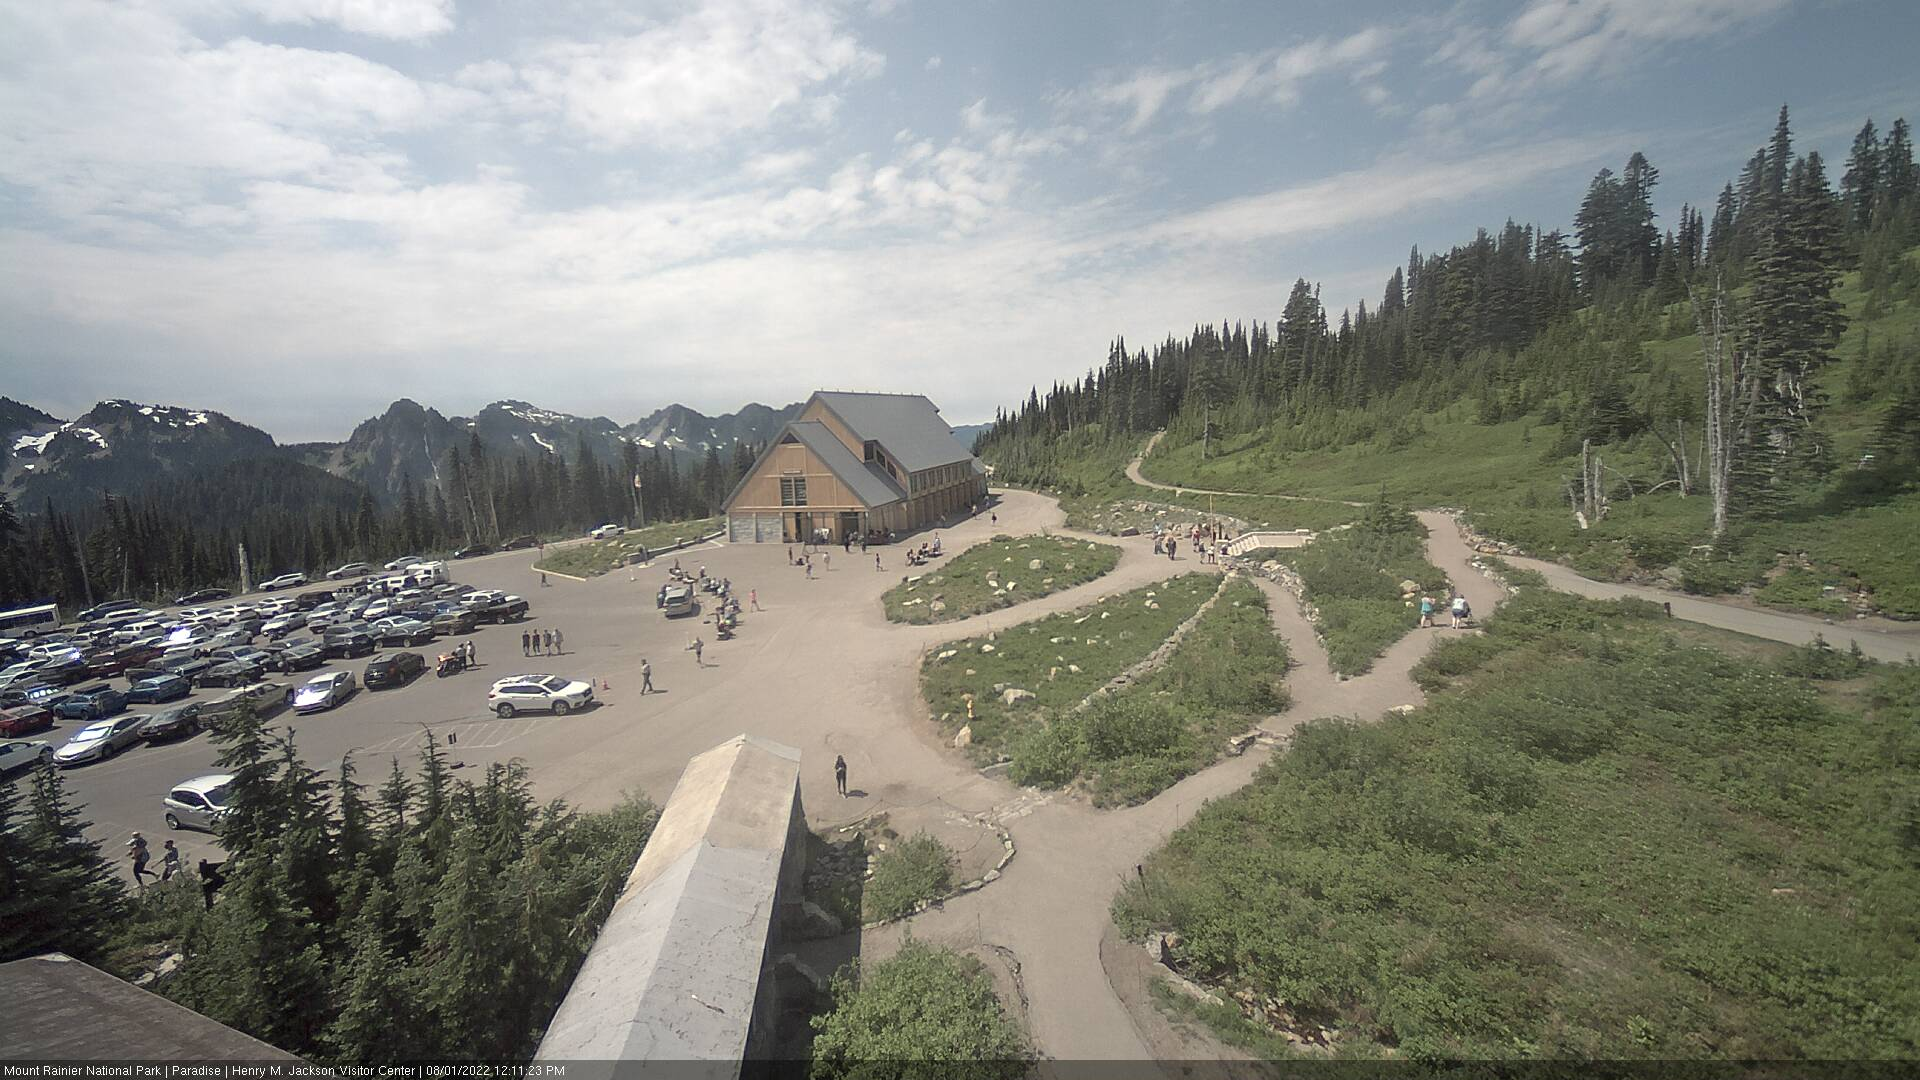 If image does not appear, please try refreshing your browser. Mountain Weather conditions often disable the camera!